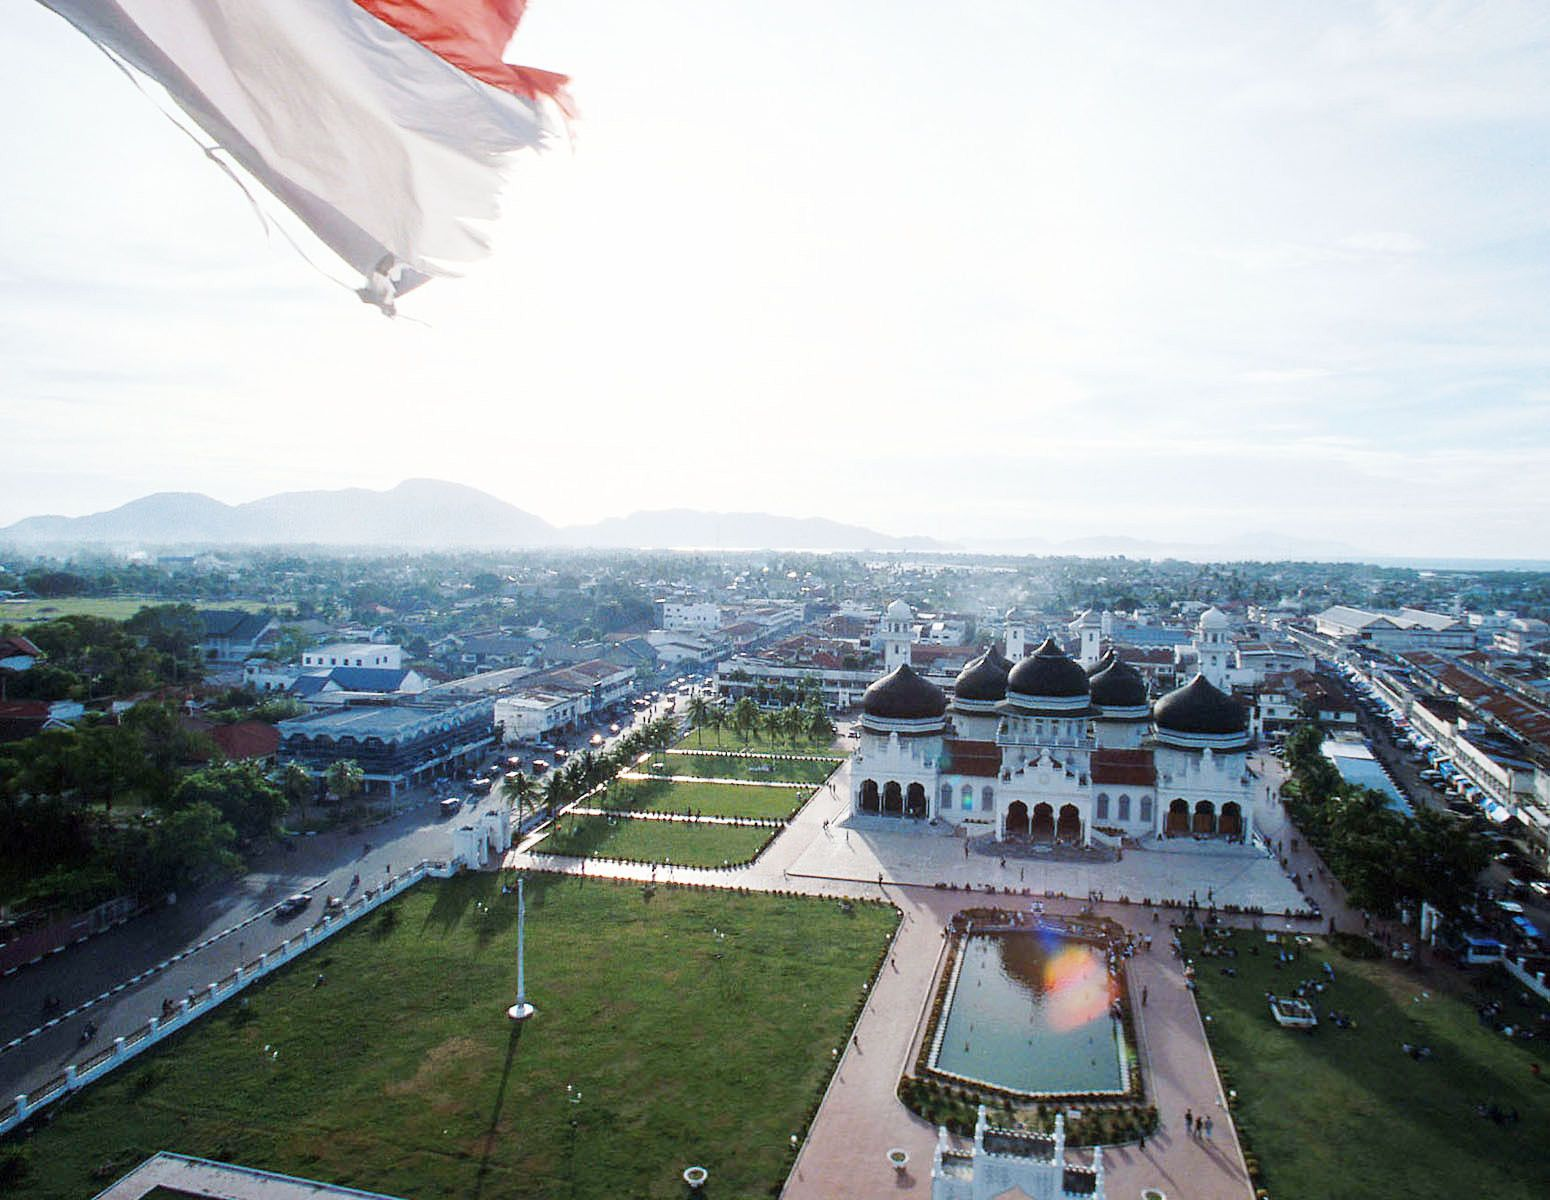 Banda Aceh is the capital city of Aceh. Baiturrahman Mosque is one of the most beautiful mosques in Southeast Asia.